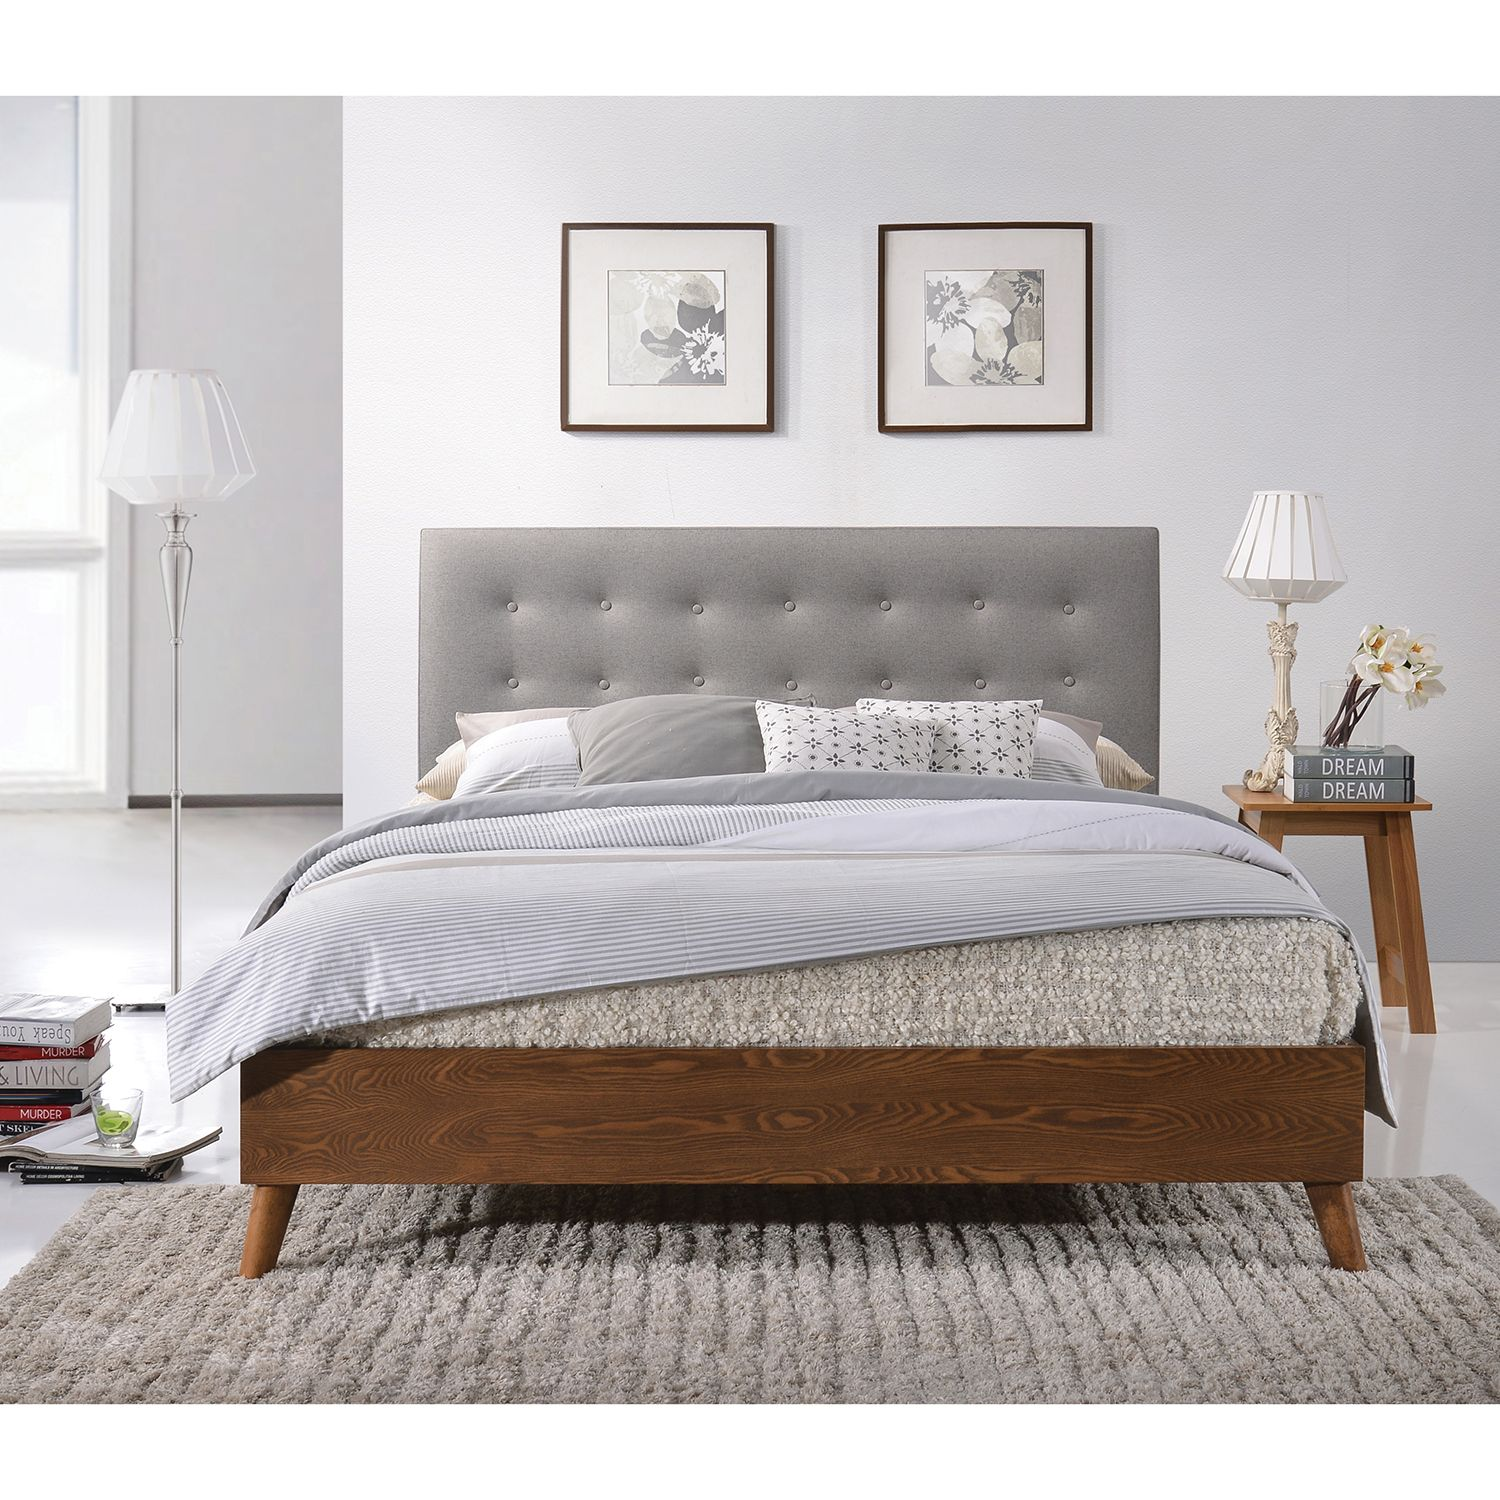 Gino Wooden Bed With Fabric Headboard Next Day Select Day